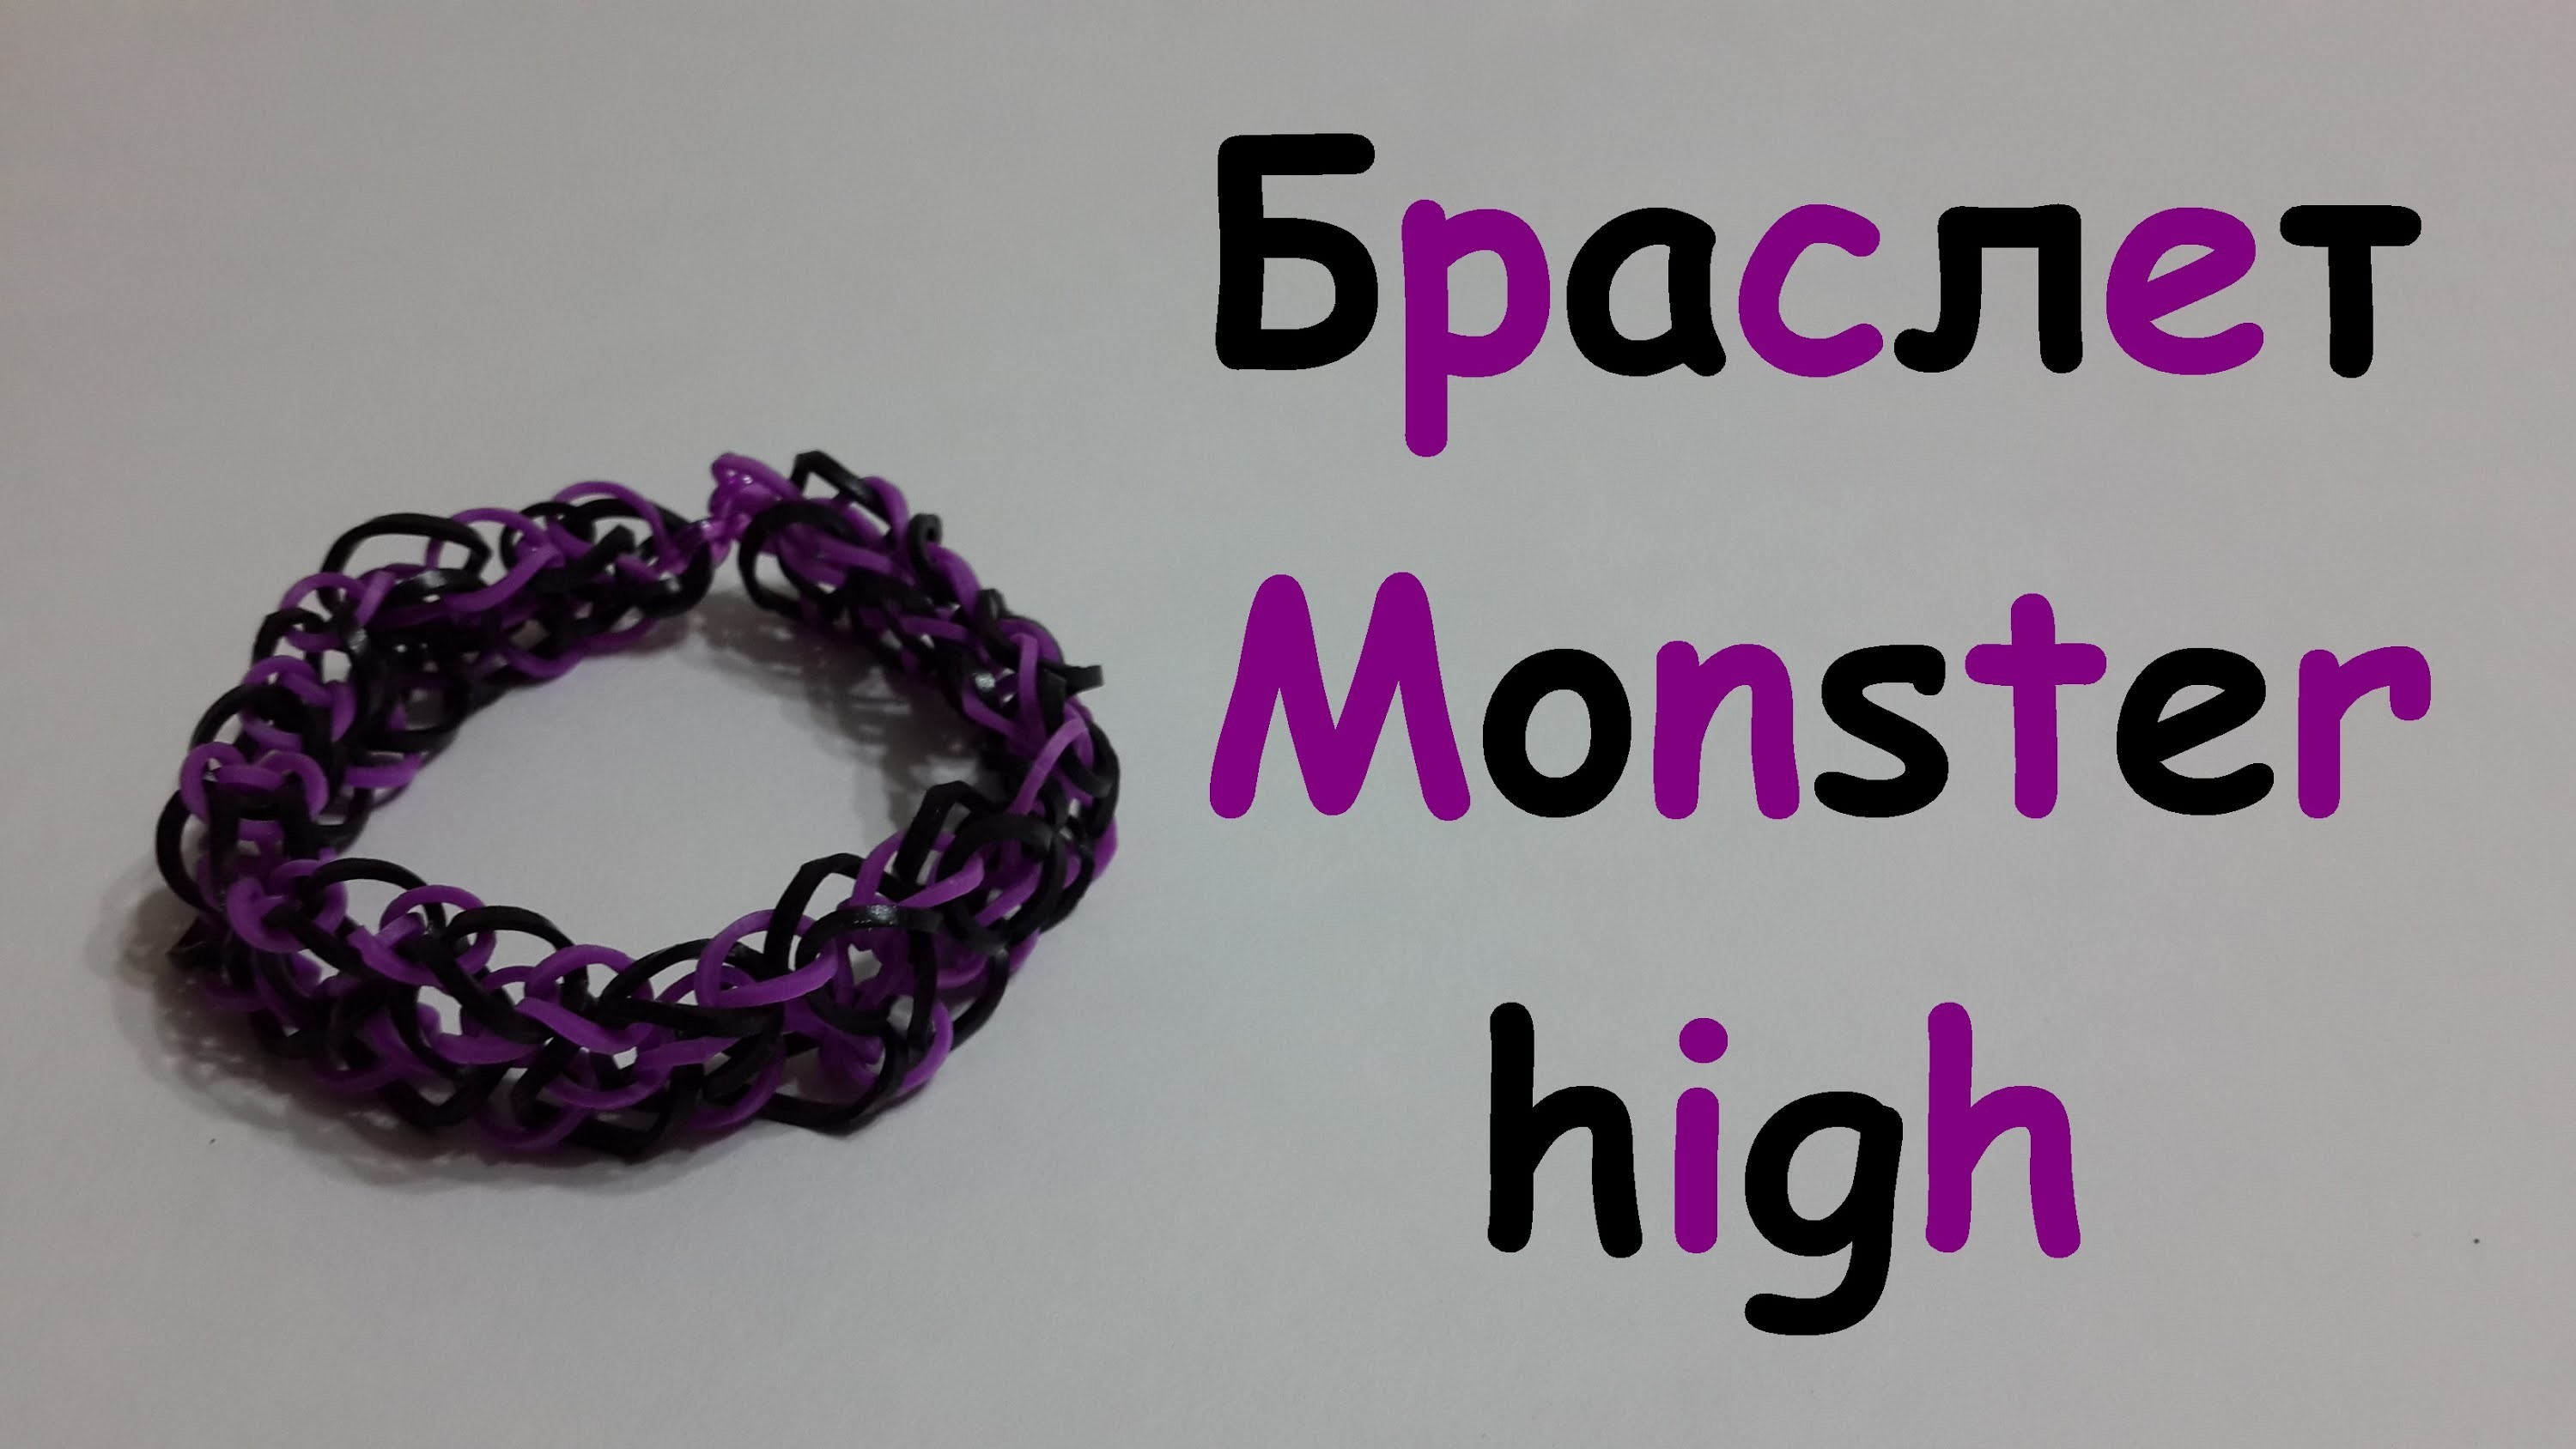 Браслет Monster high (Школа монстров) из резинок Rainbow loom bands